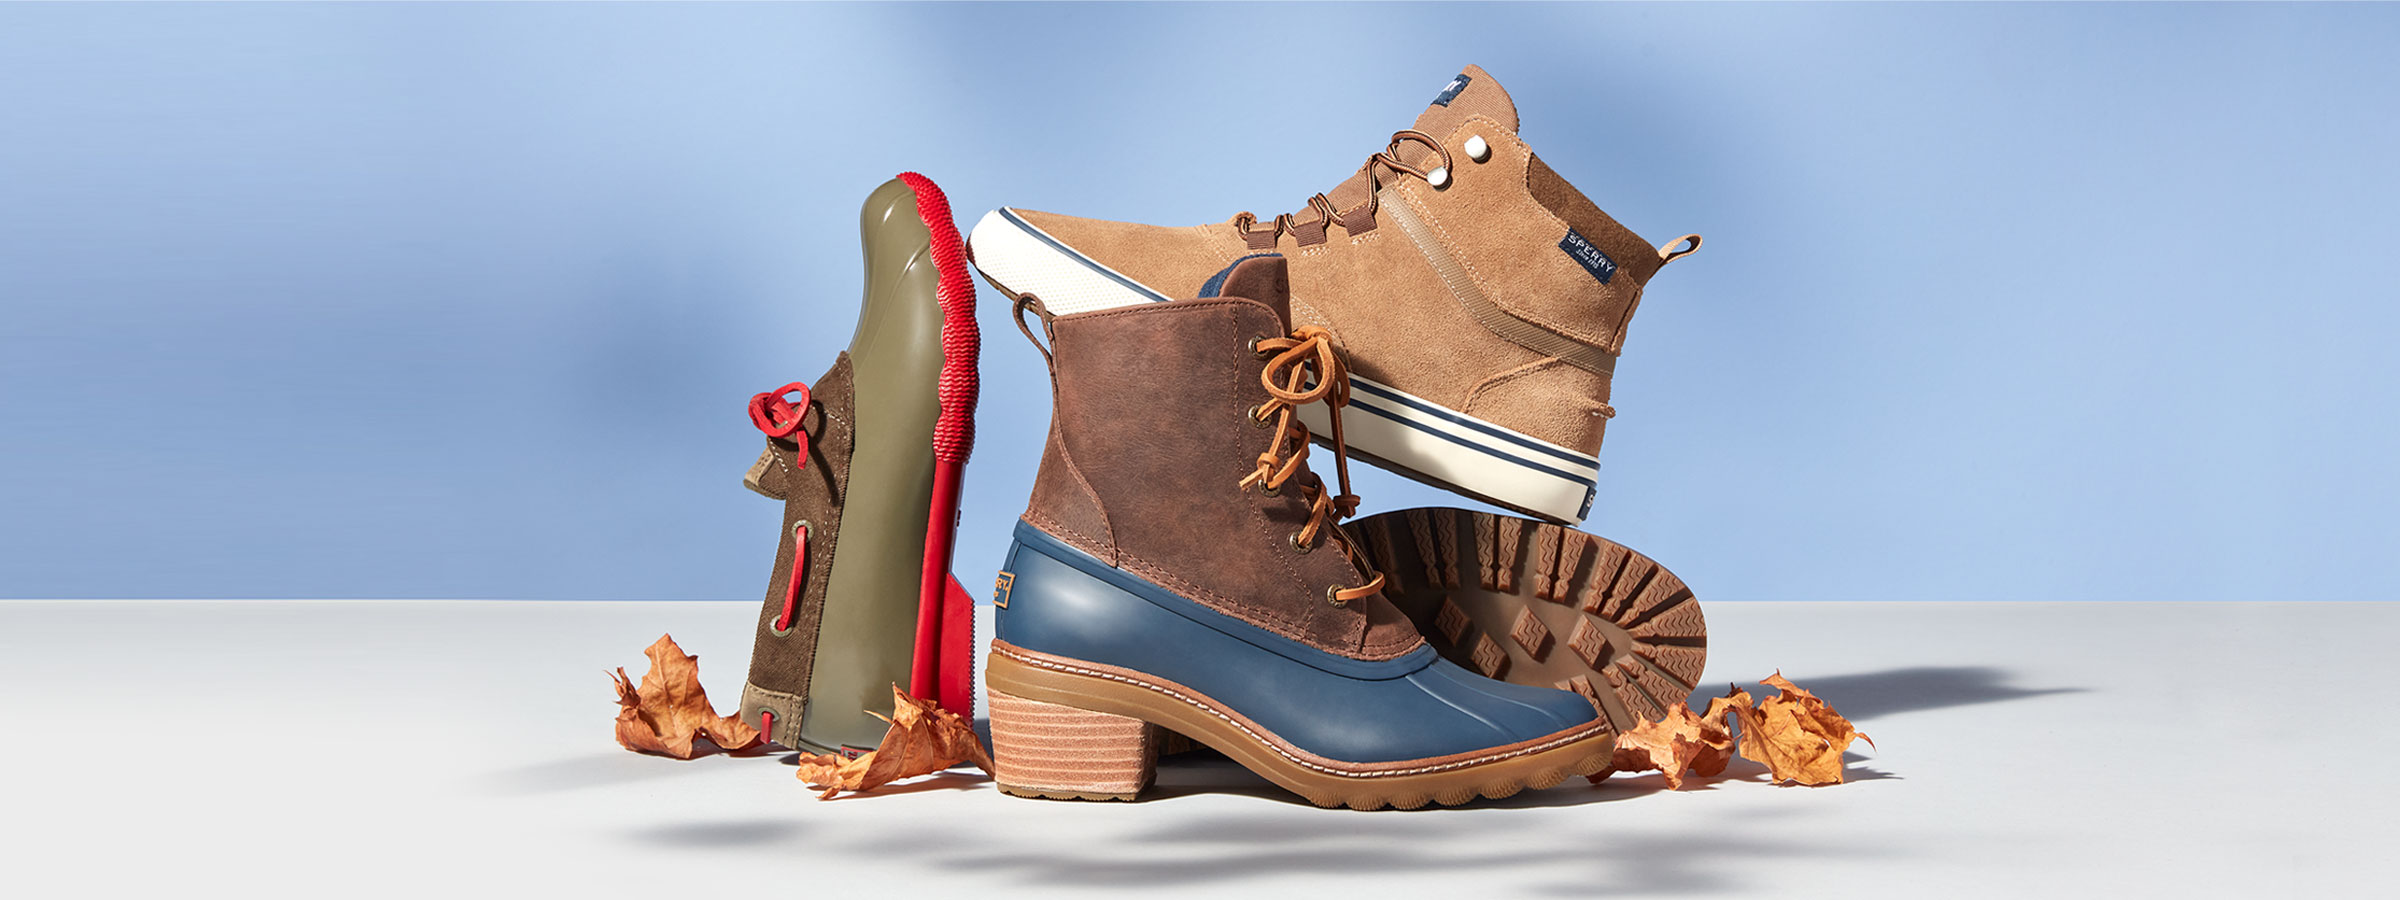 4 Sperry boots propped up on each other surrounded by leaves.